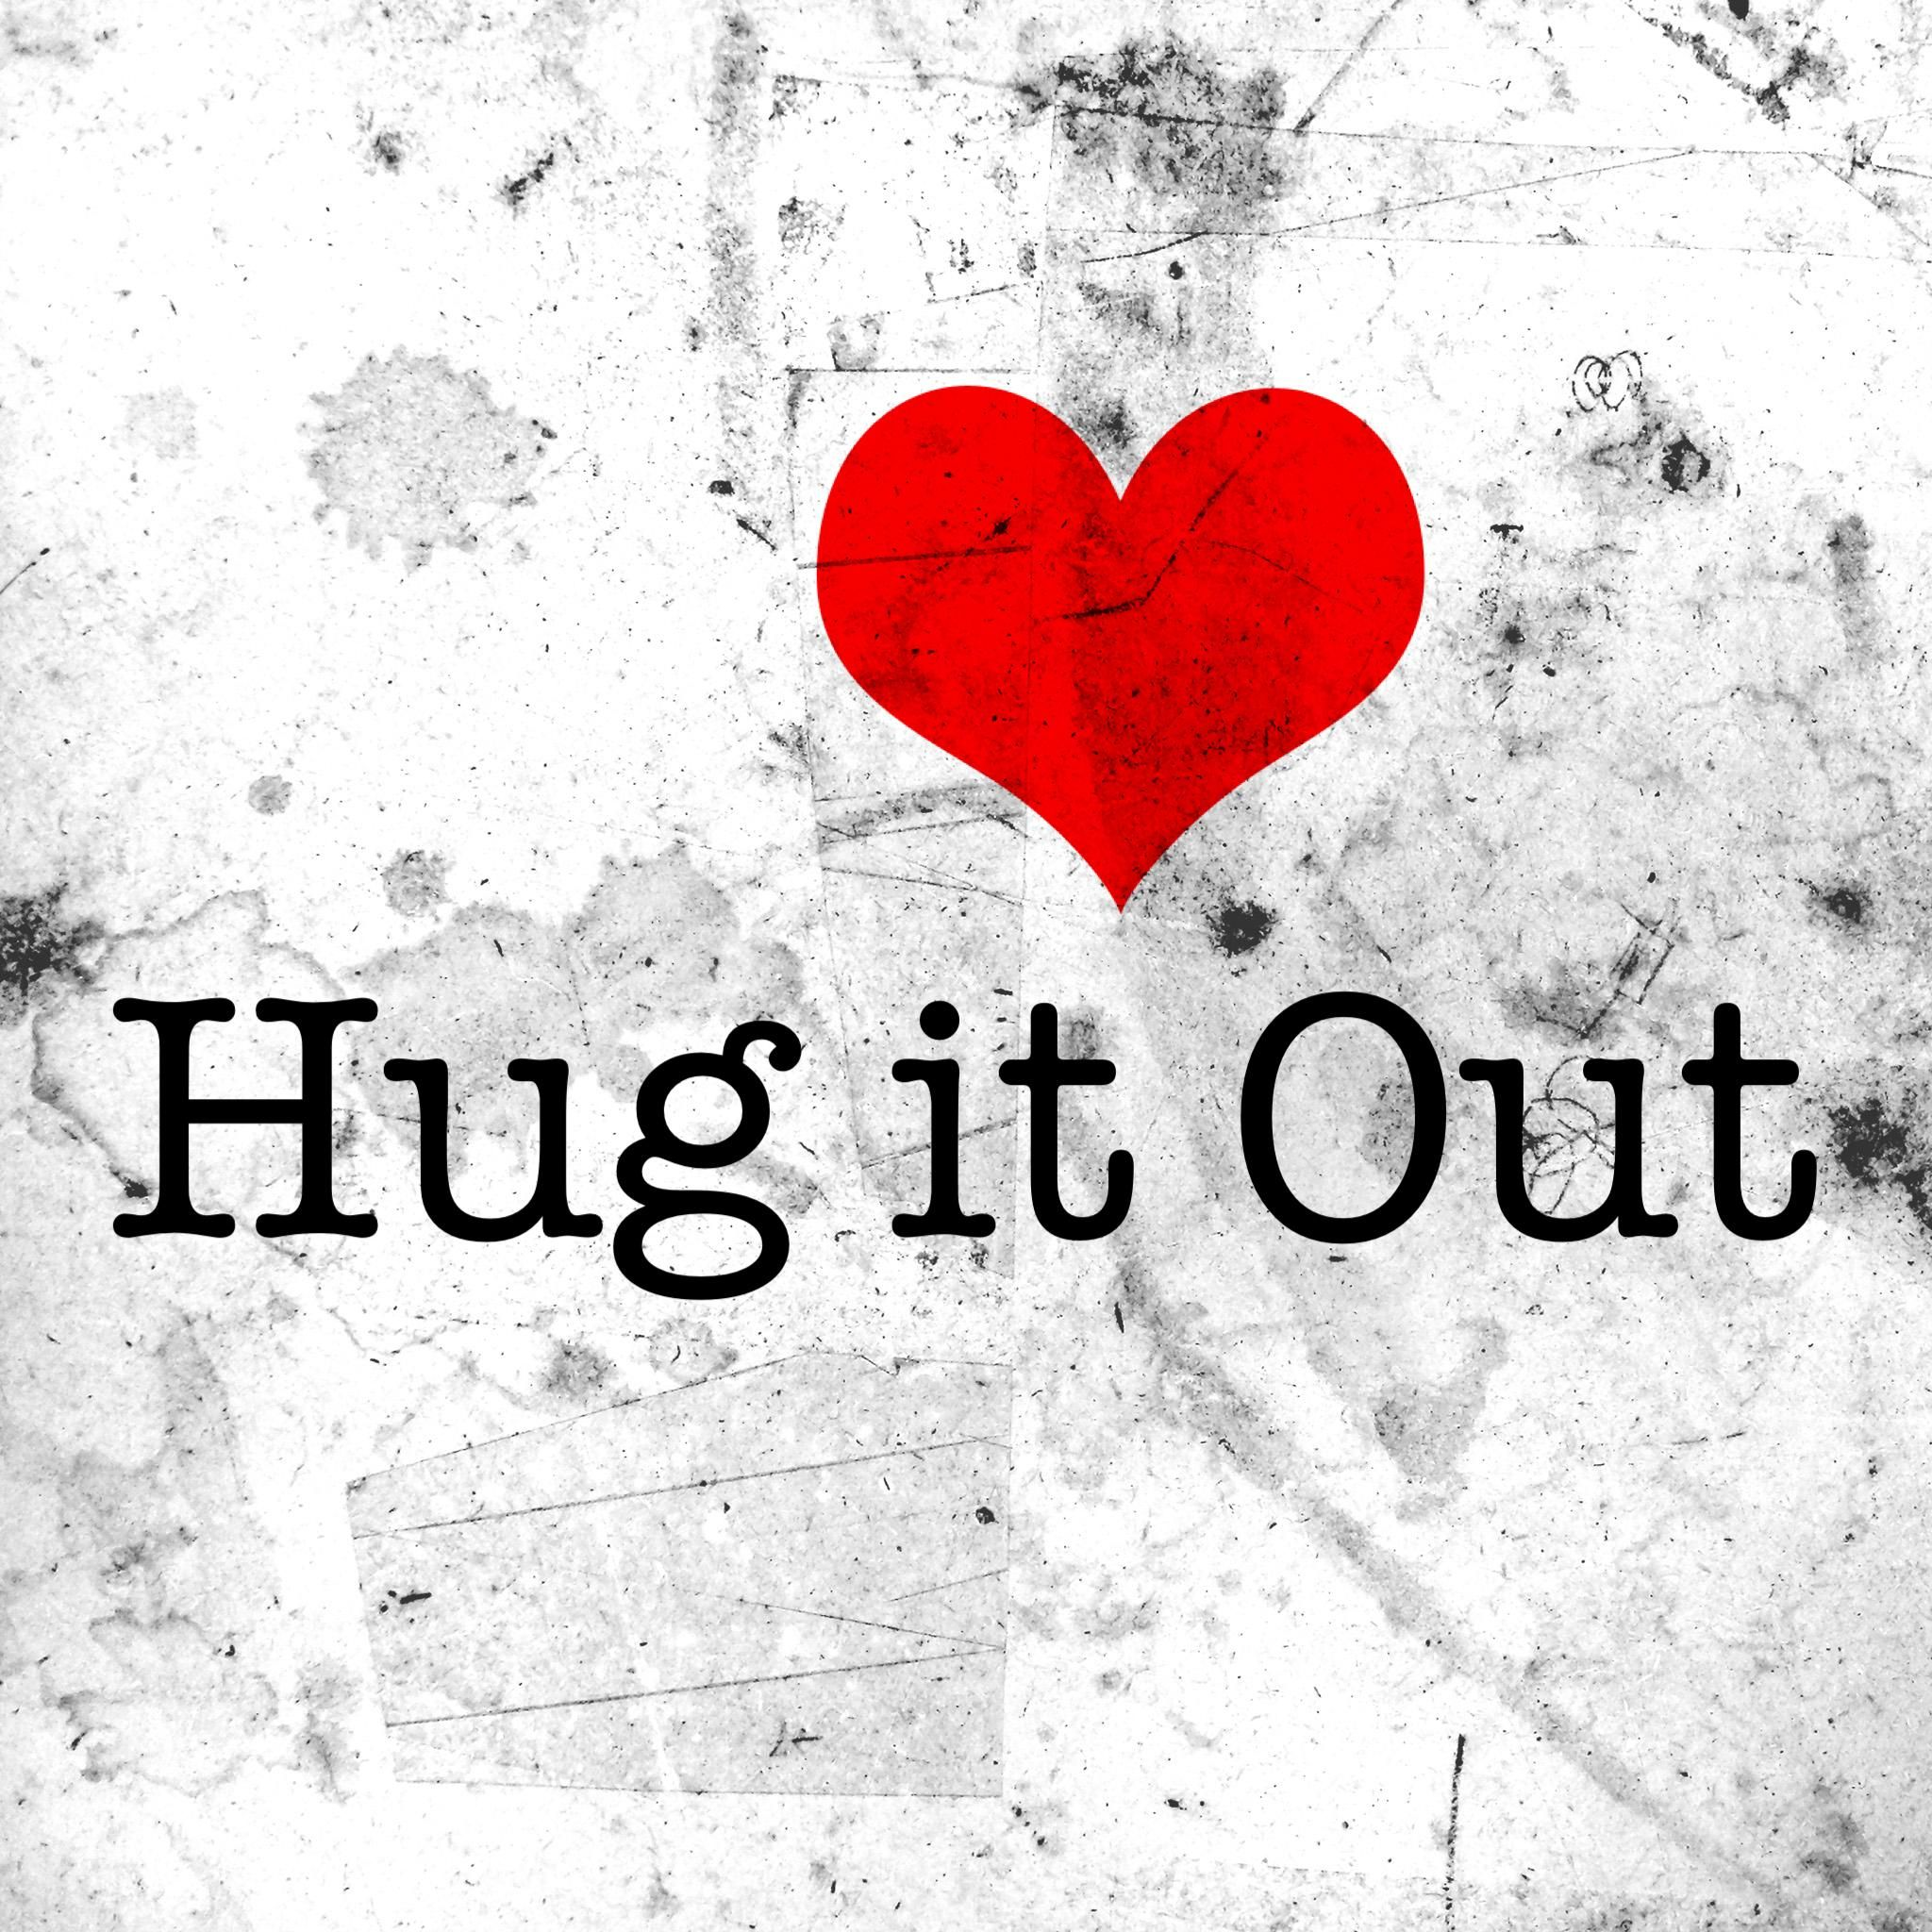 Hug it out bobby schuller inspirational words